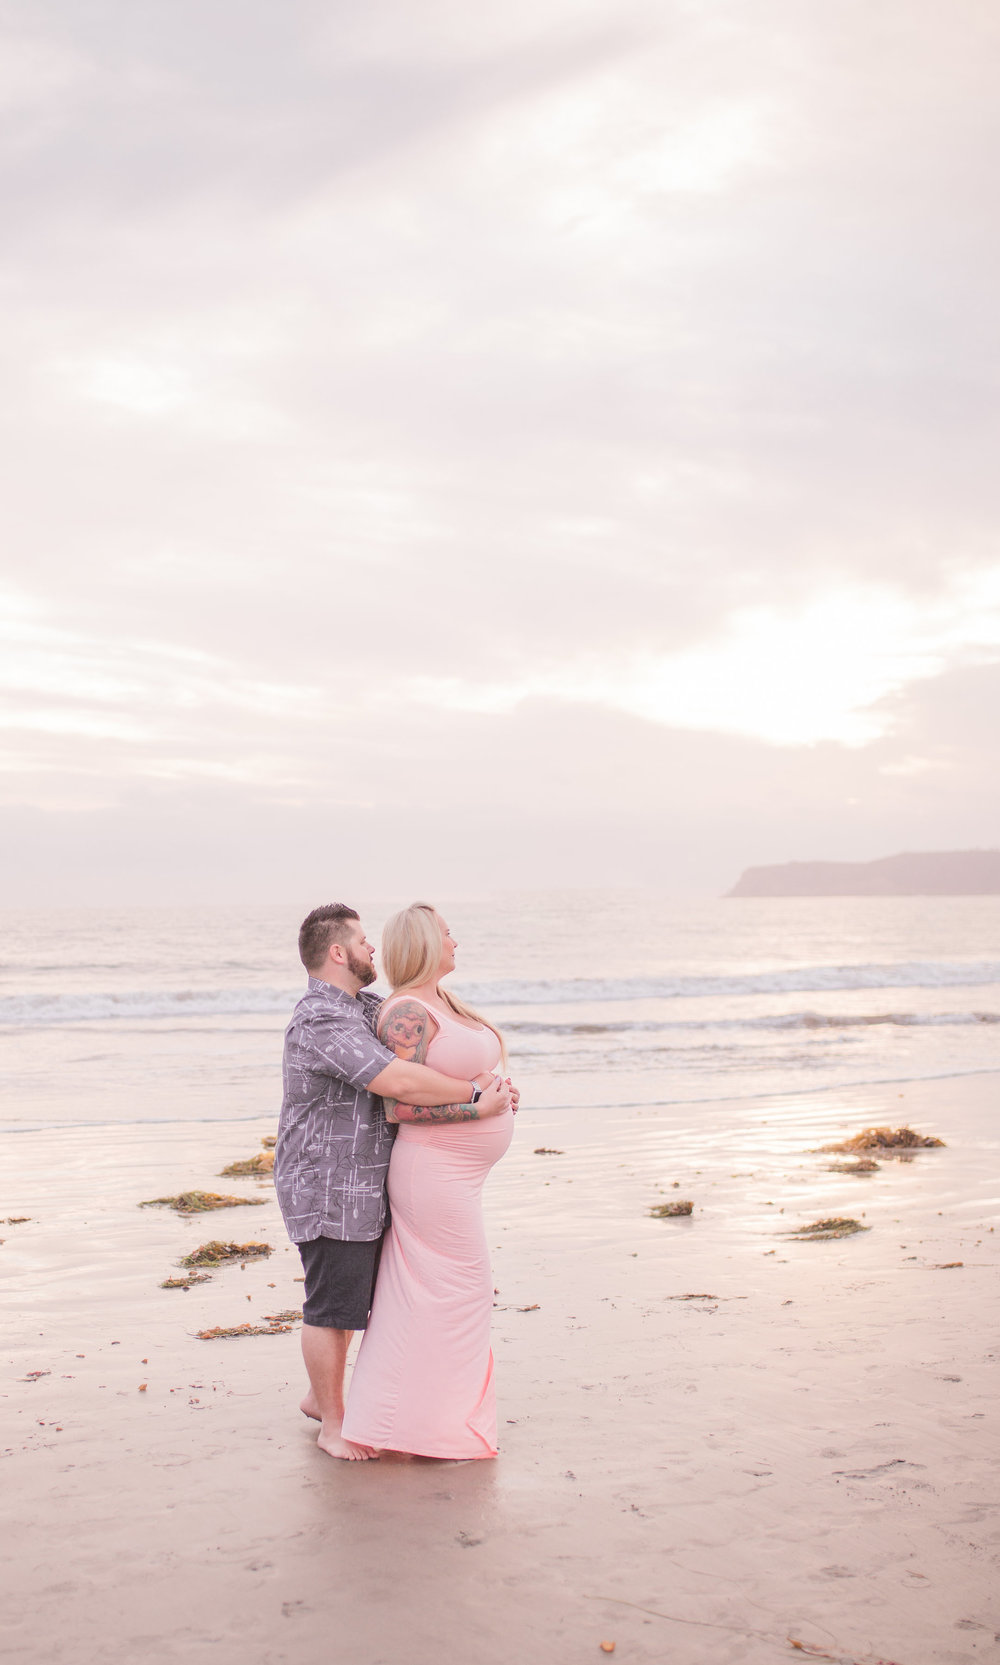 film photographer, maternity session, coronado